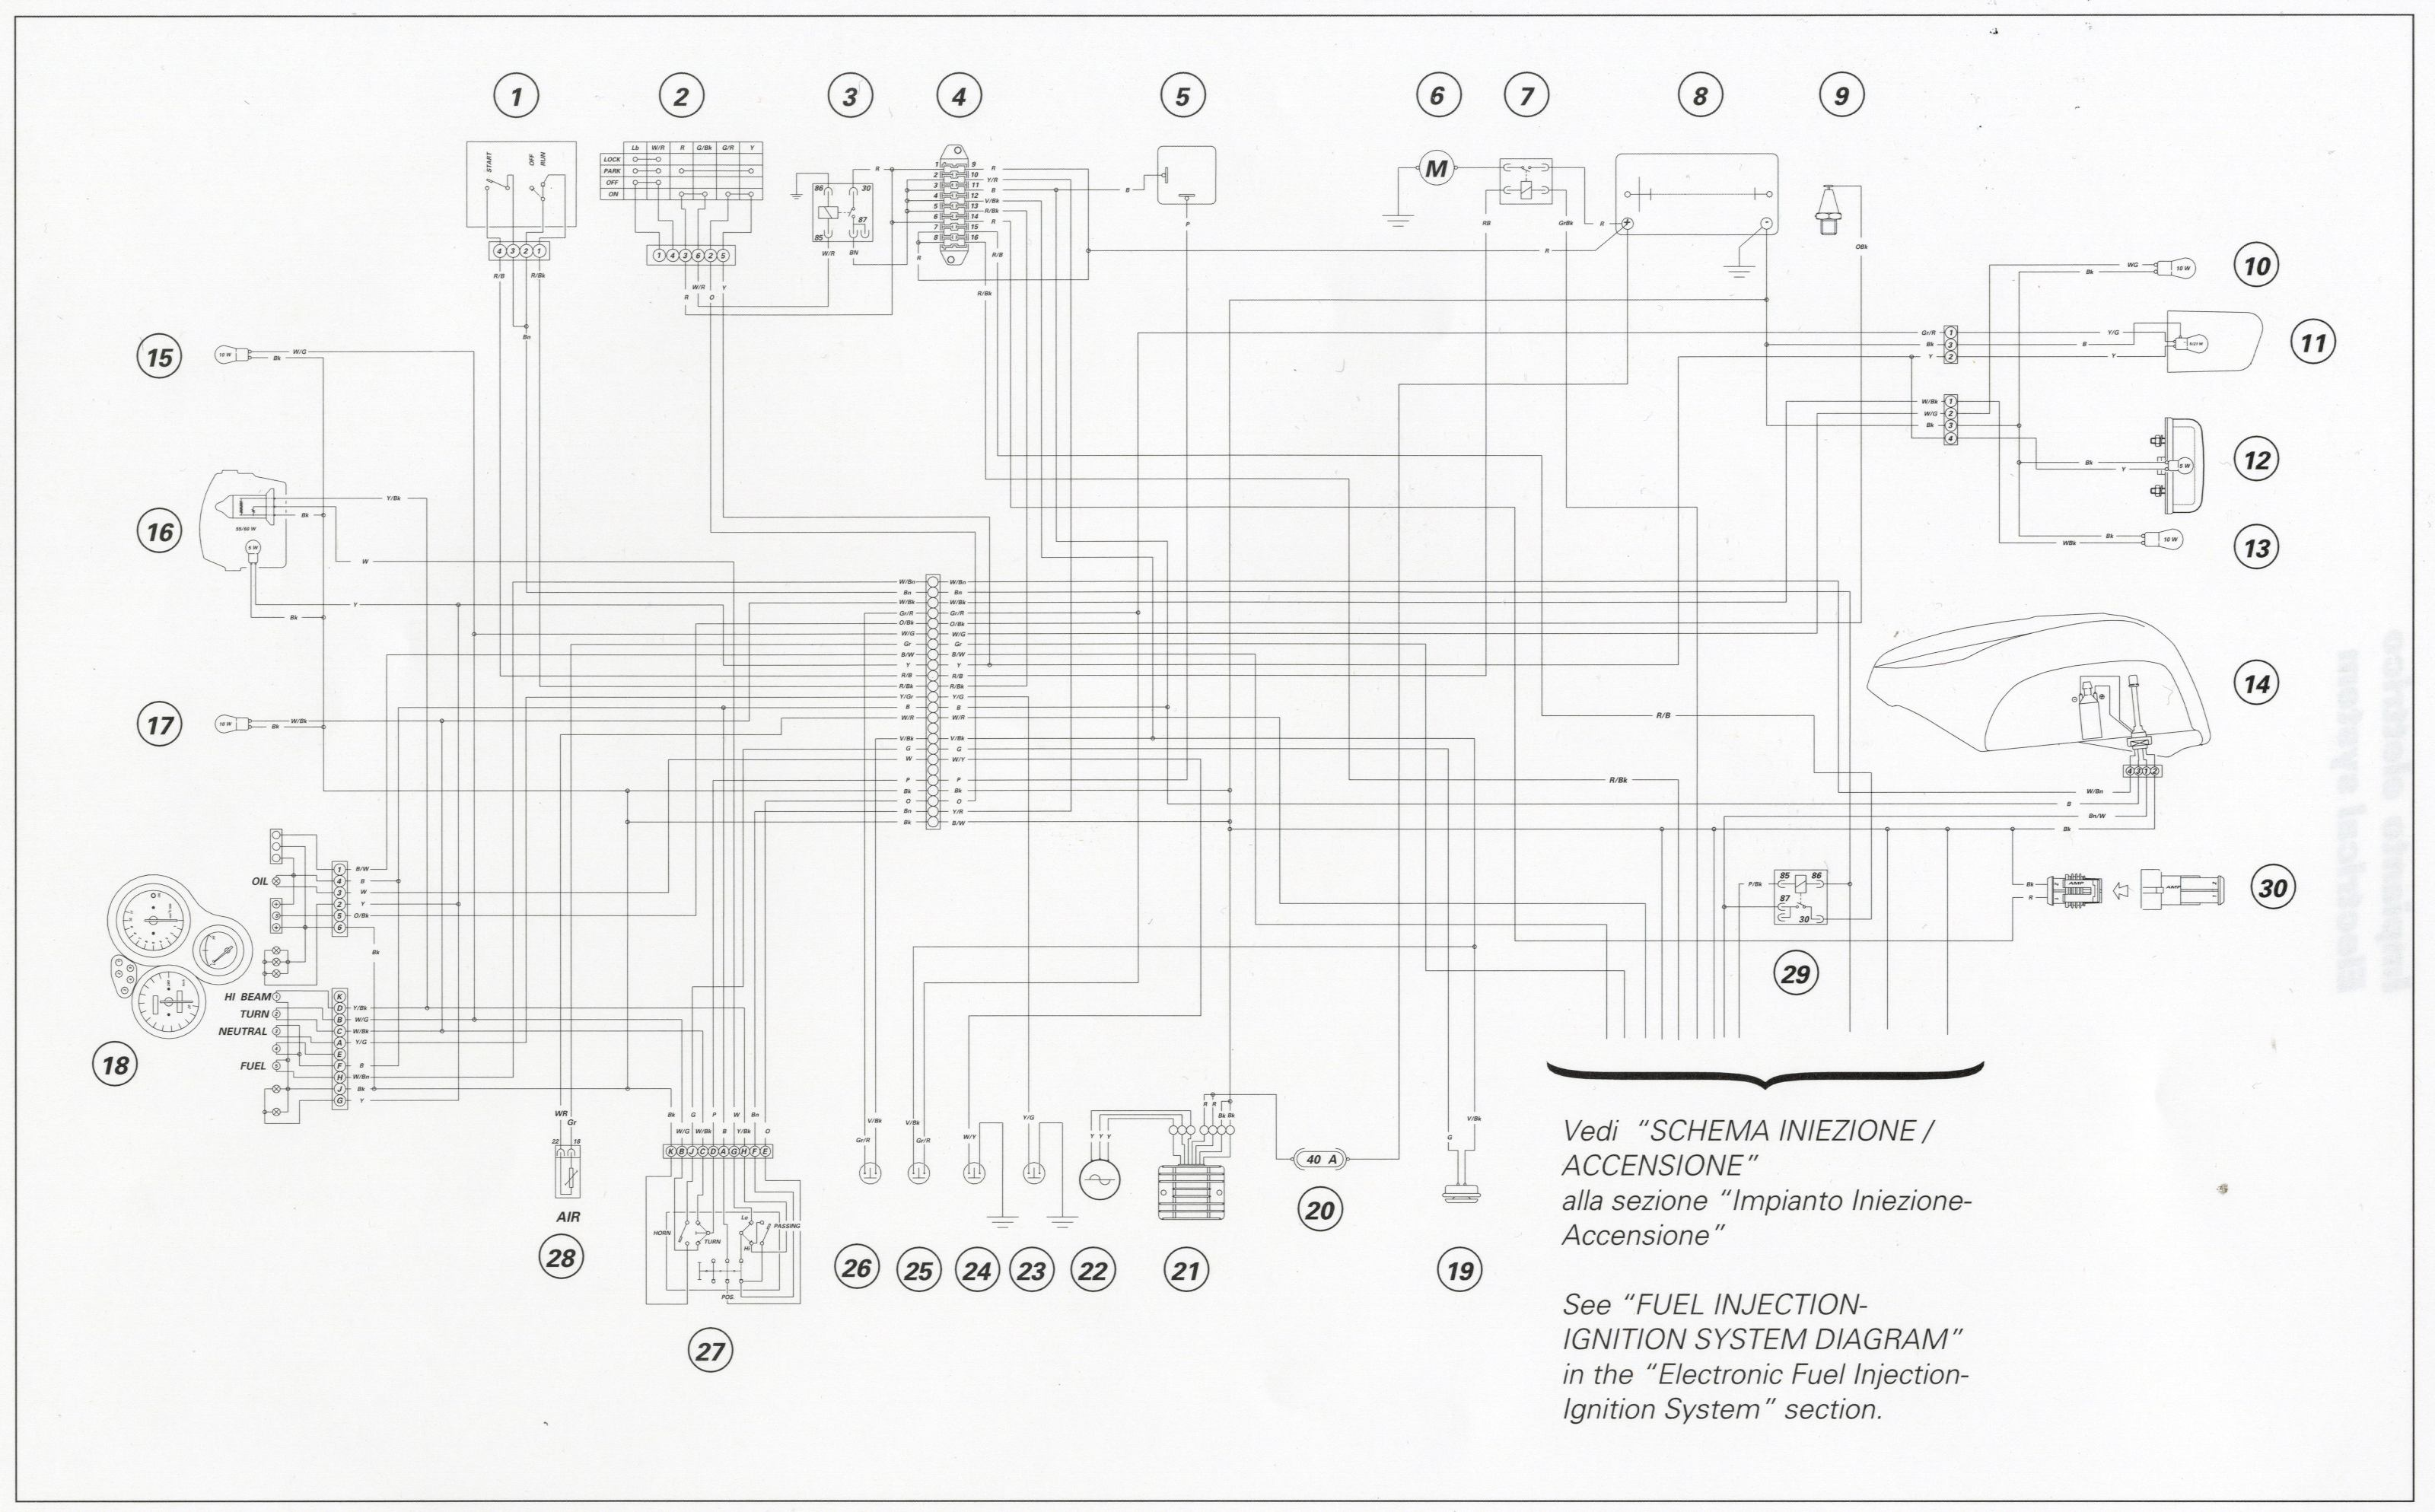 wiring diagram for a shop